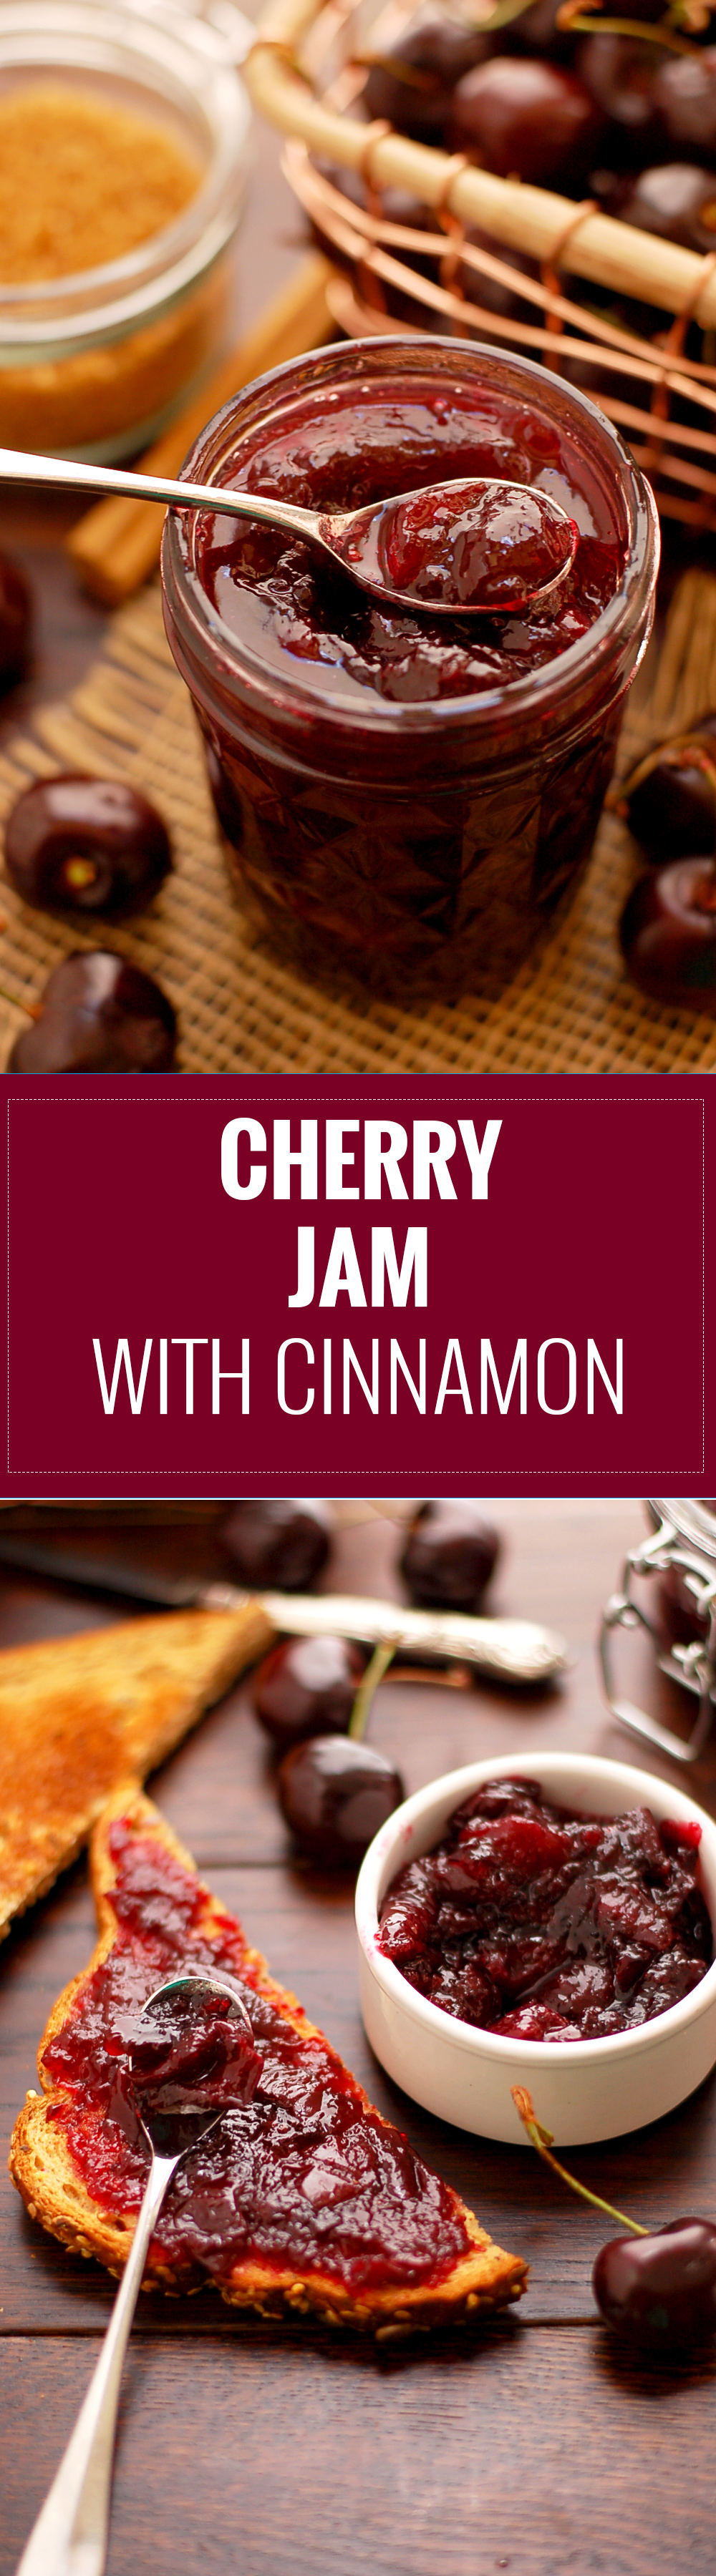 Delicious Cherry and Cinnamon Jam. This is super easy and tasty recipe, with the use of agar, 100% vegan and vegetarian! Yum!